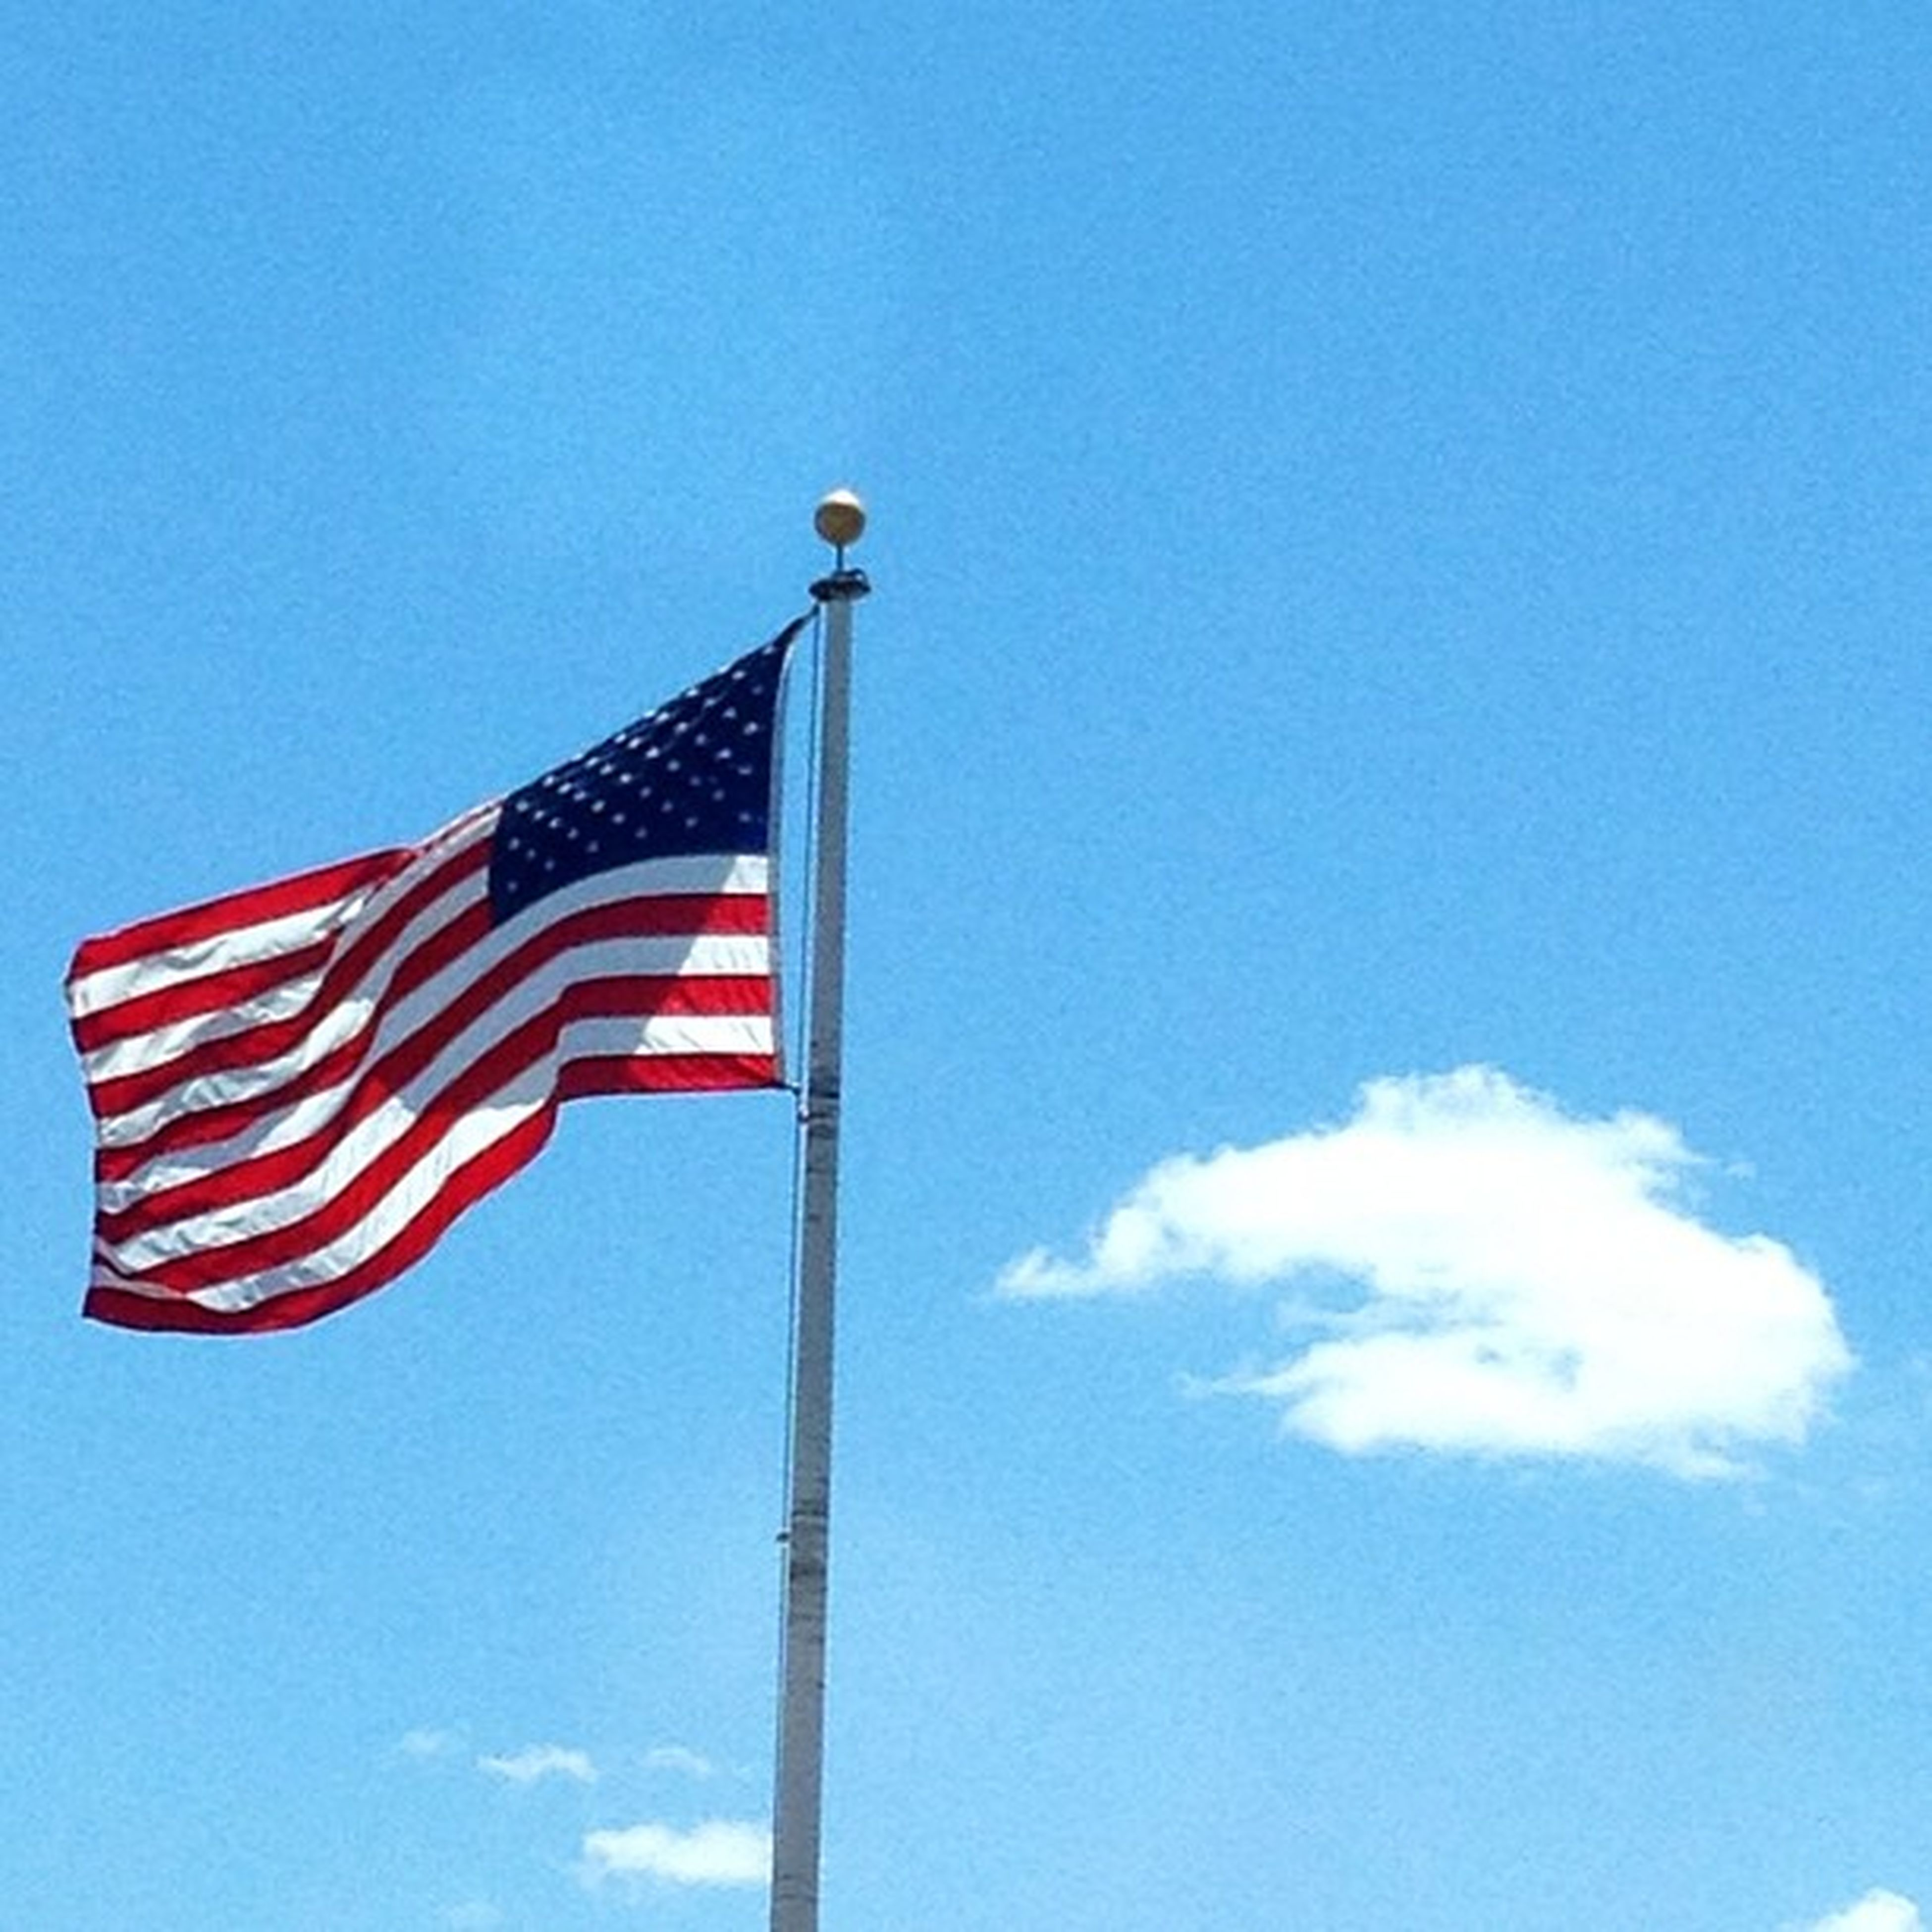 low angle view, patriotism, flag, identity, national flag, american flag, blue, clear sky, pole, striped, wind, sky, culture, flag pole, pride, red, day, copy space, fluttering, outdoors